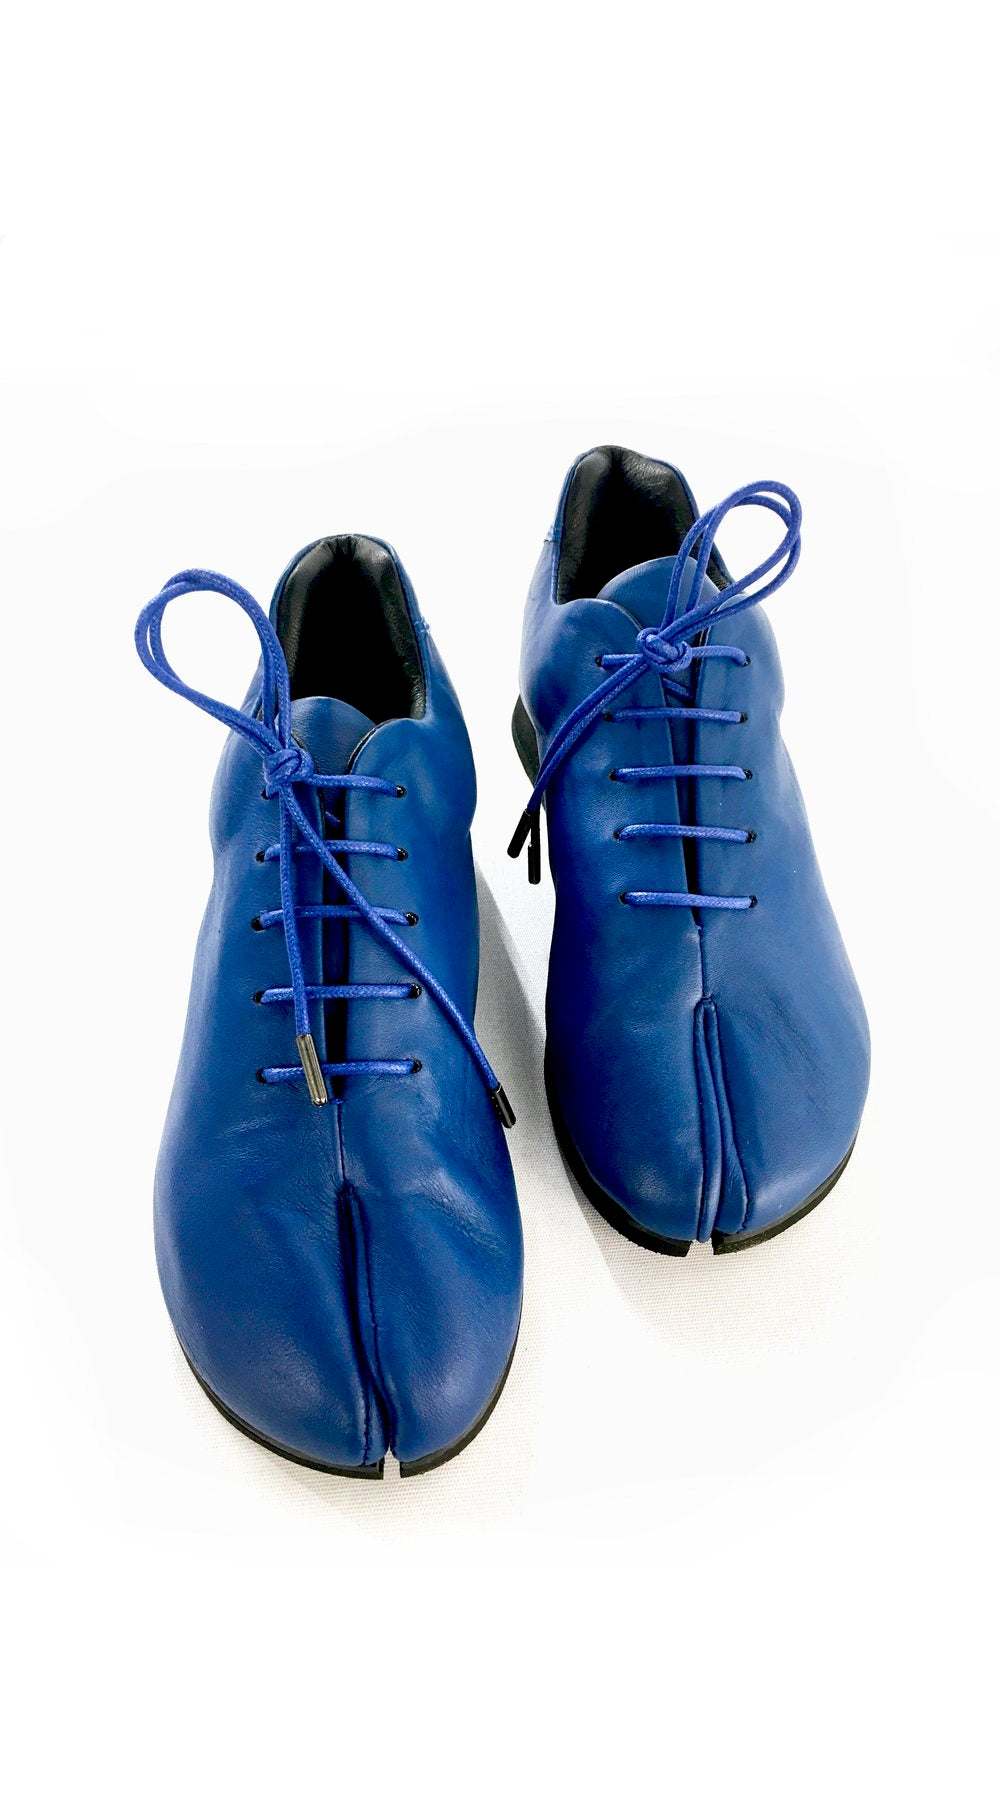 The Tabi Sneaker - Blue